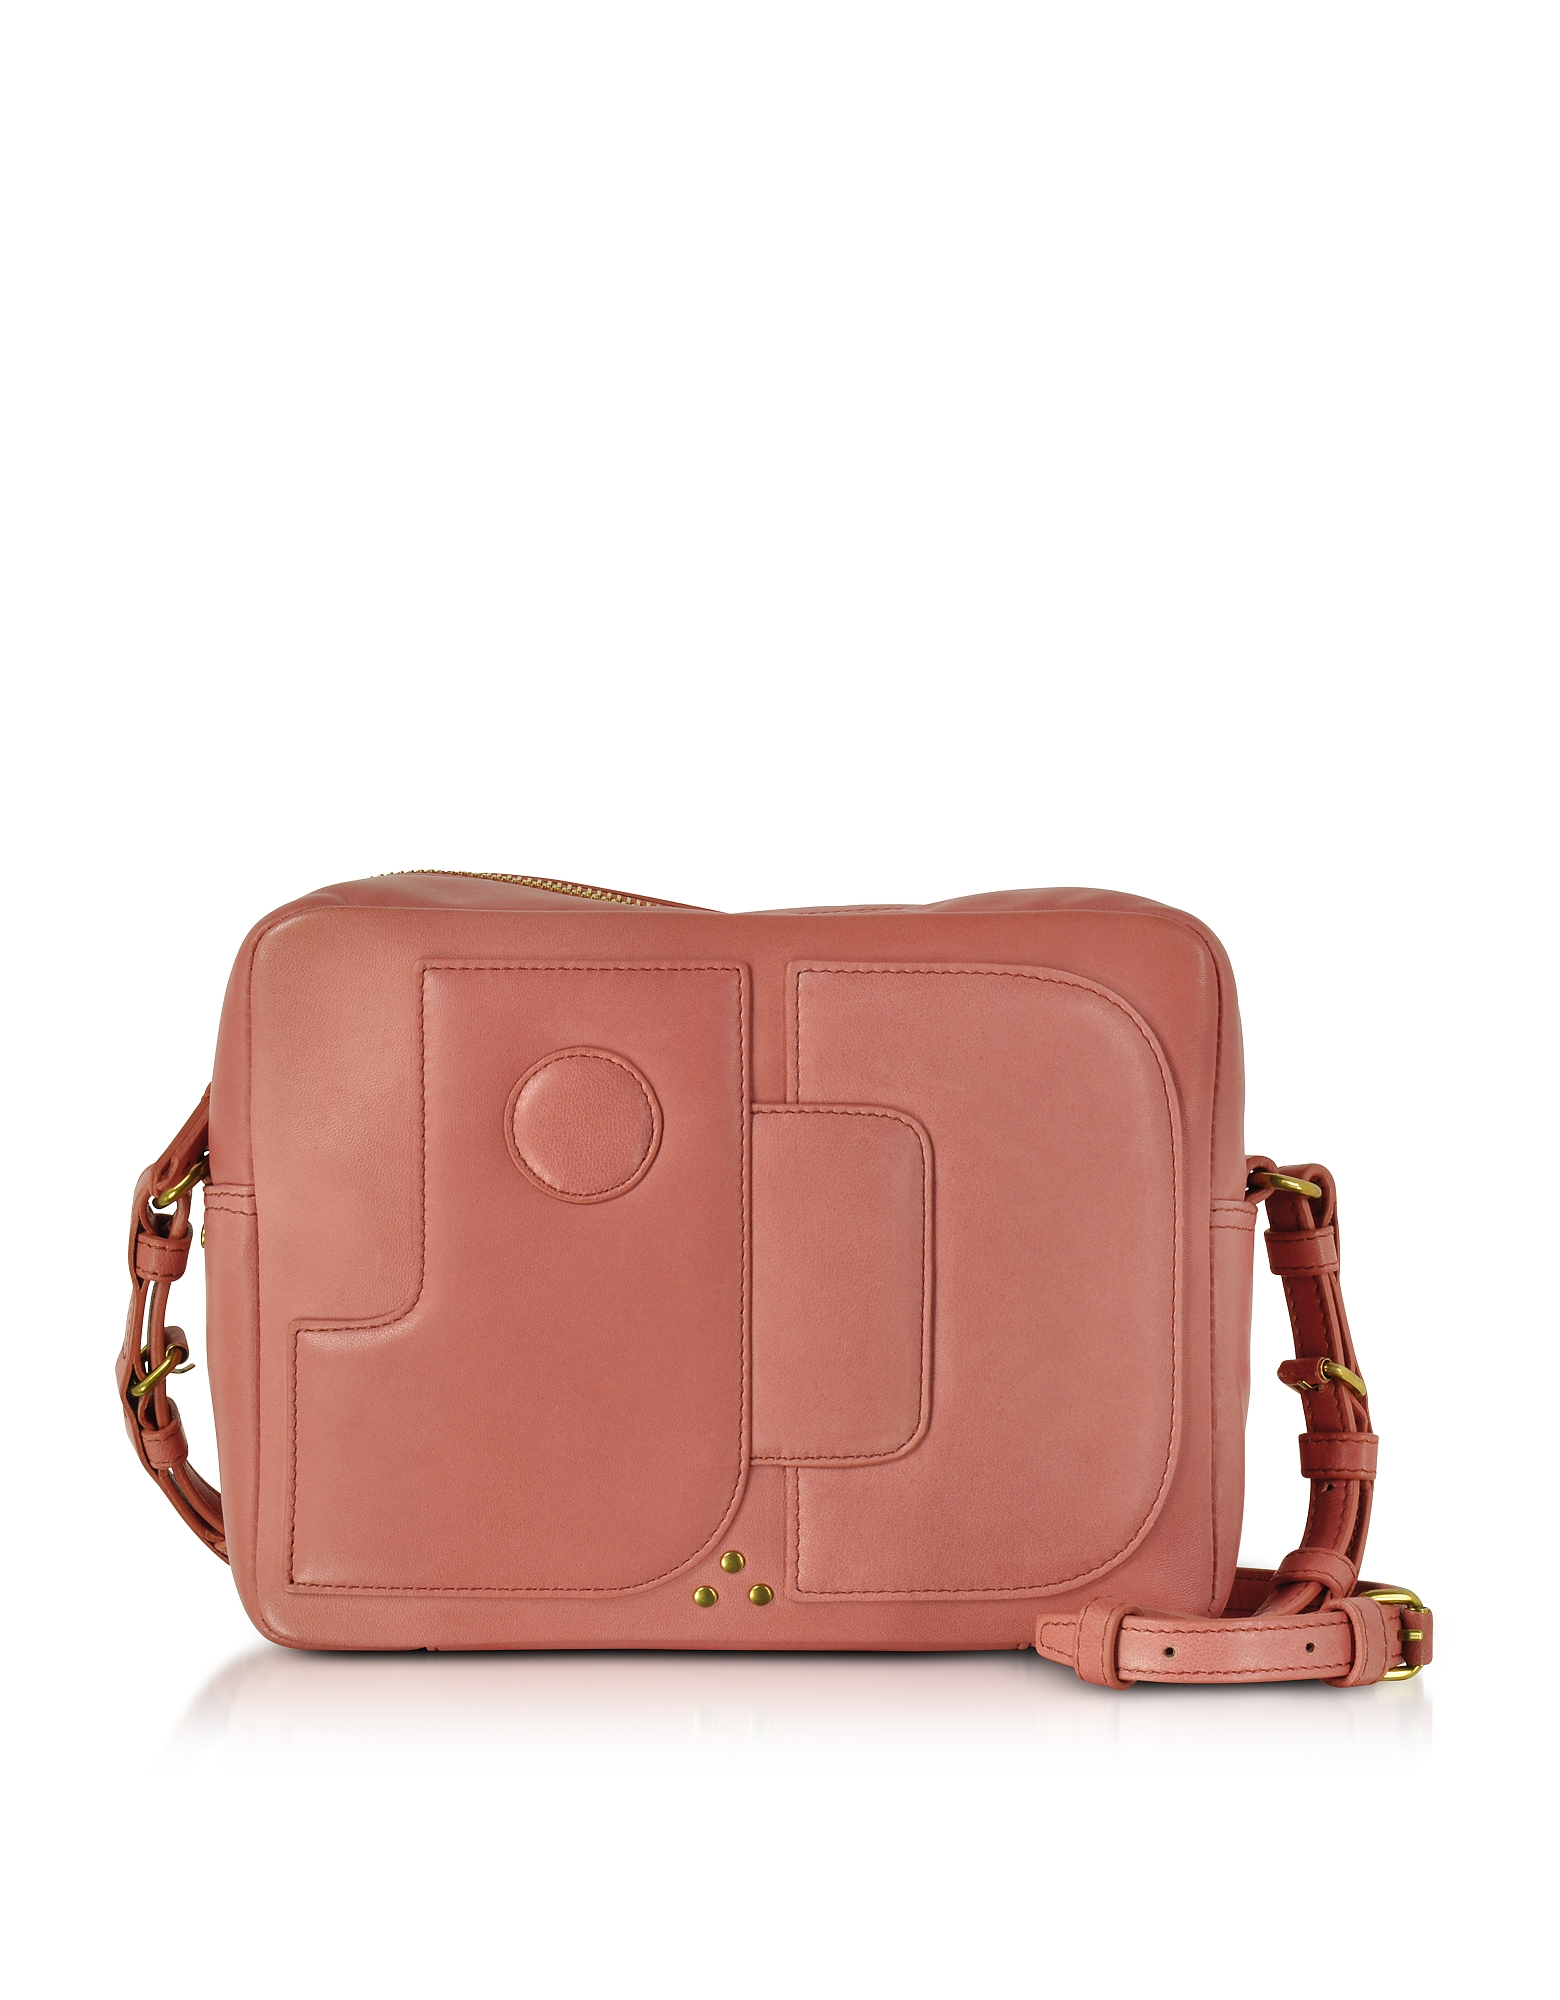 Jerome Dreyfuss Handbags, Dominique Rose Leather Crossbody Bag